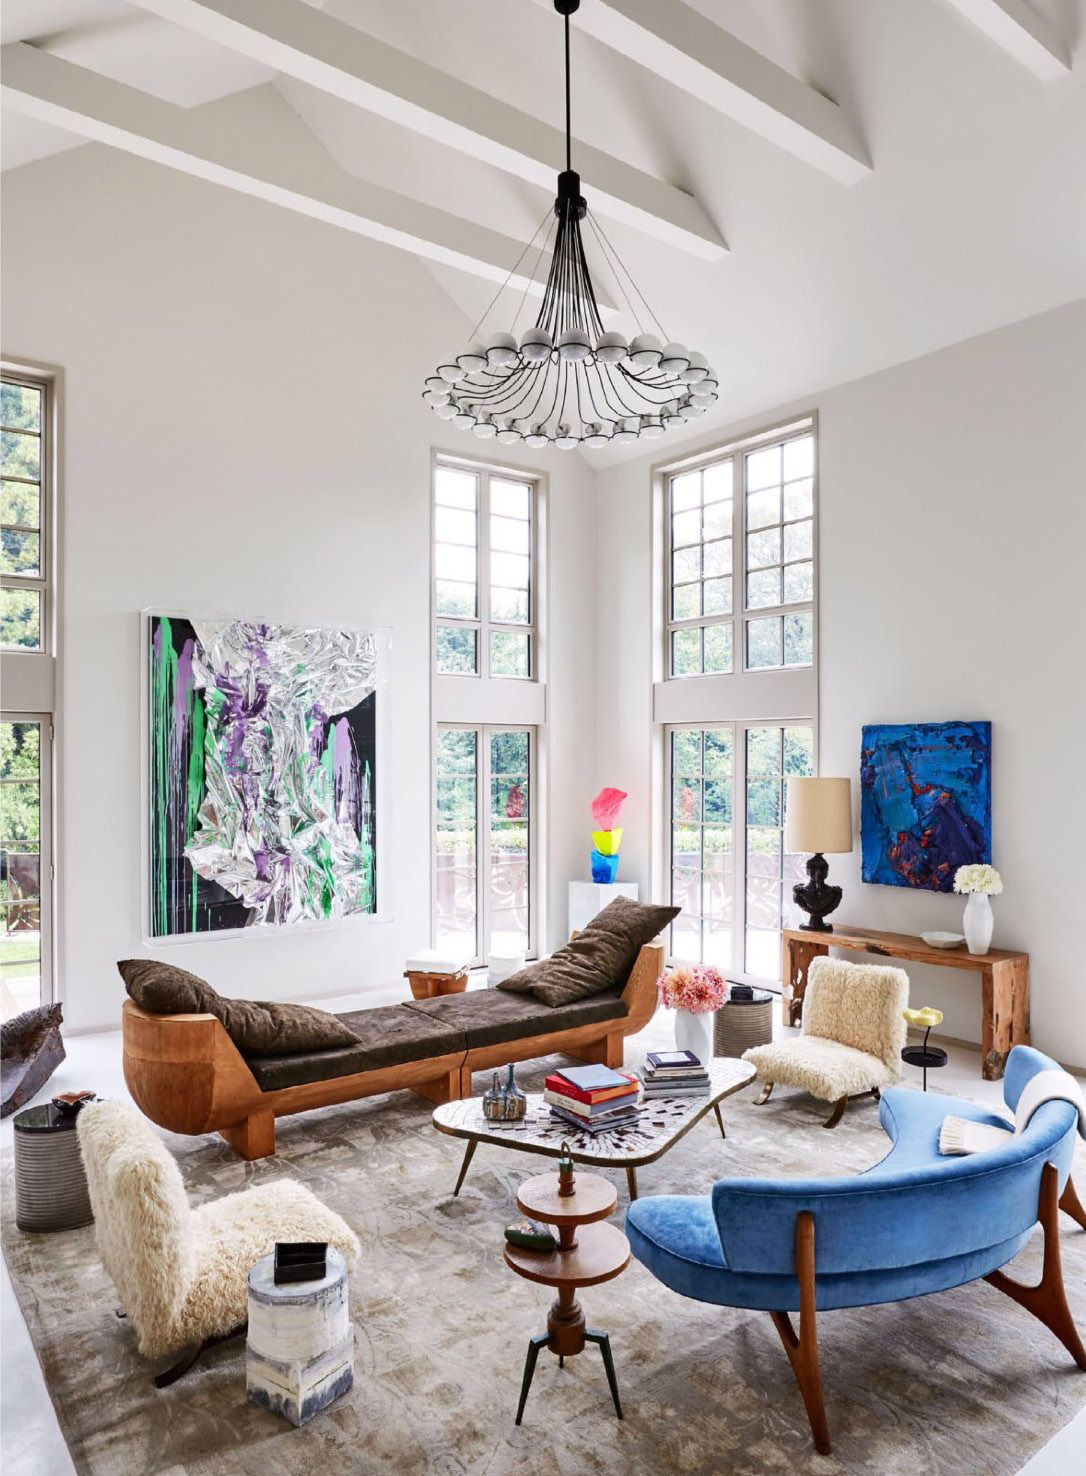 ... RETREAT: At The Hamptoms Getaway Of Powerhouse Gallery Owner Dominque  Levy And Movie Producer Dorothy Berwin The Architecture The Furniture And  Even The ...